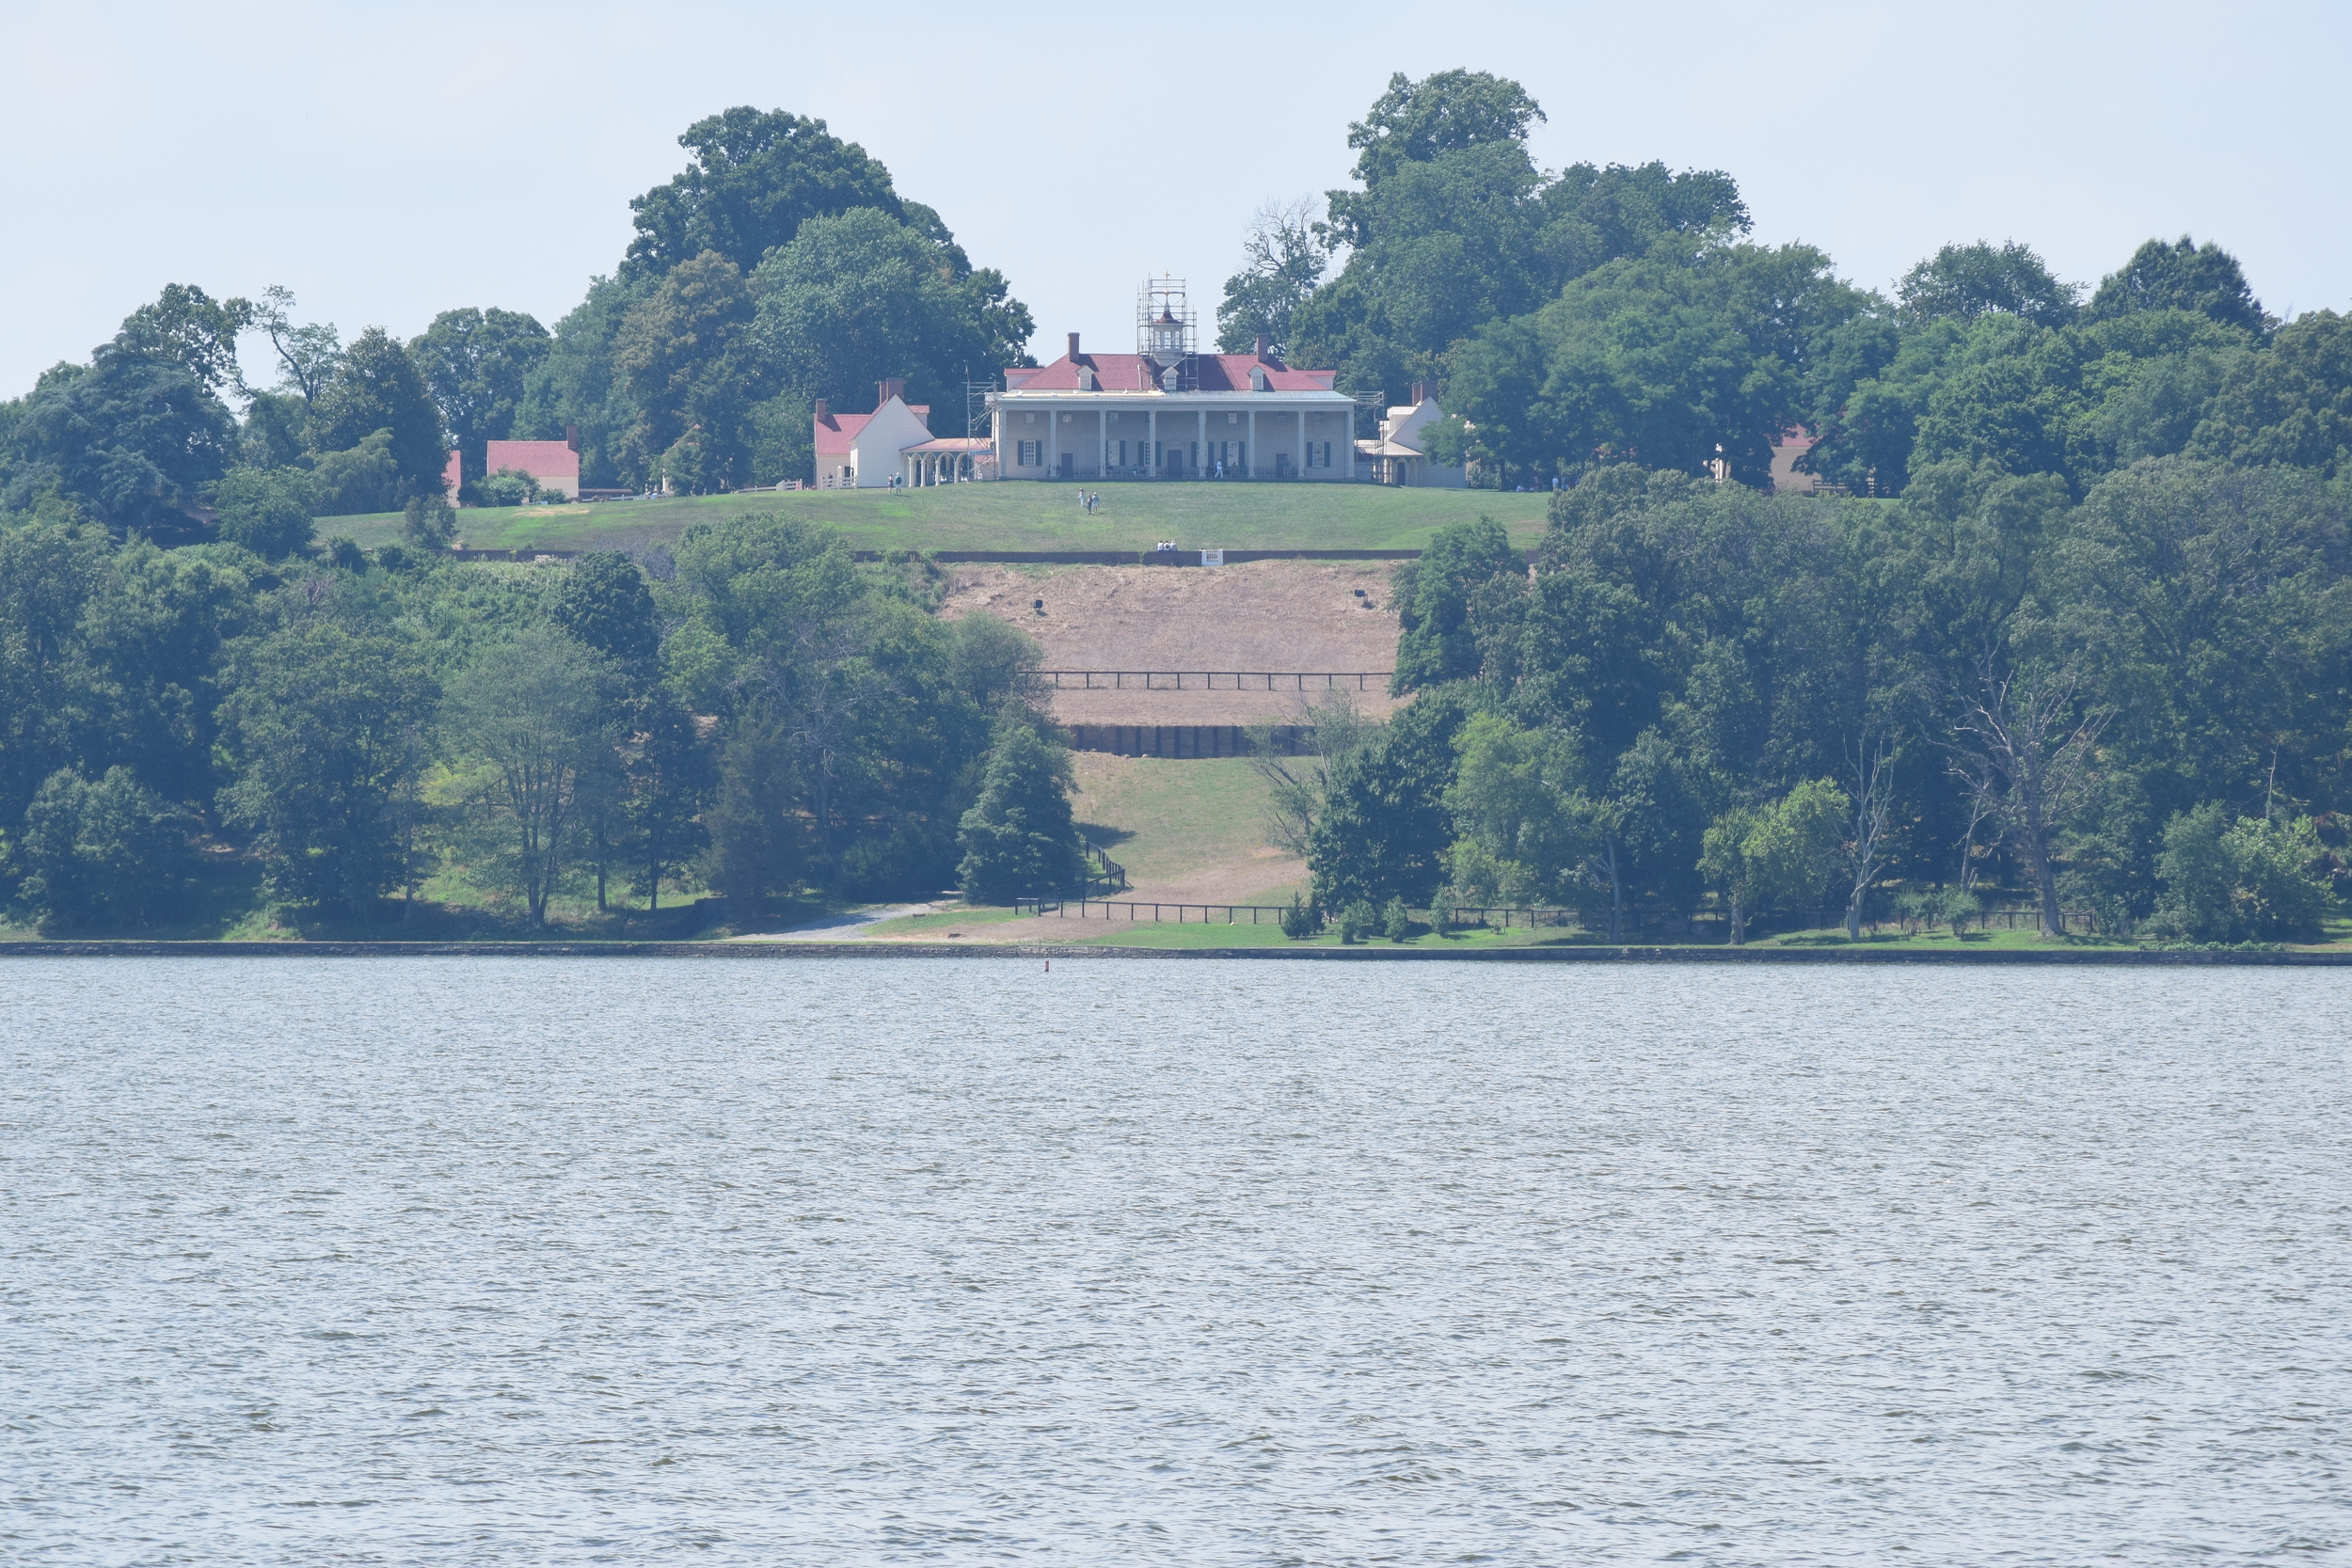 View of Mount Vernon from the Potomac. Image credit Jason Steinagle.